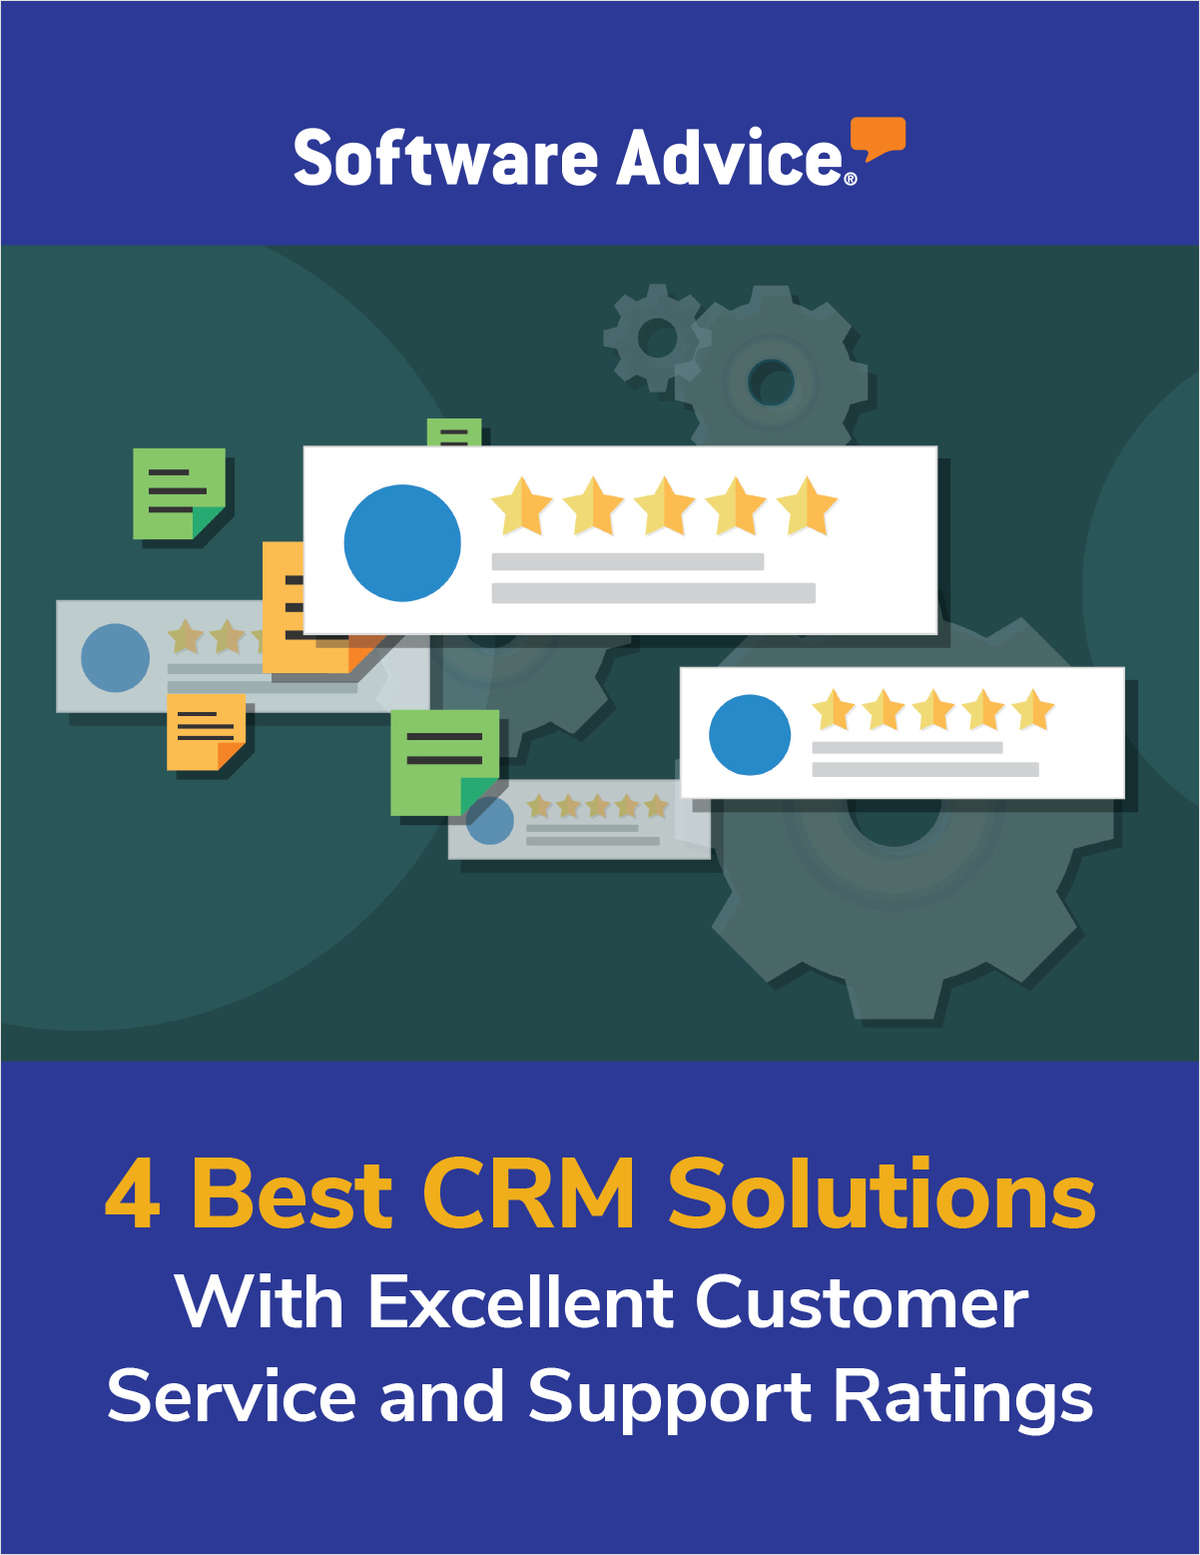 4 Best CRM Solutions With Excellent Customer Service and Support Ratings